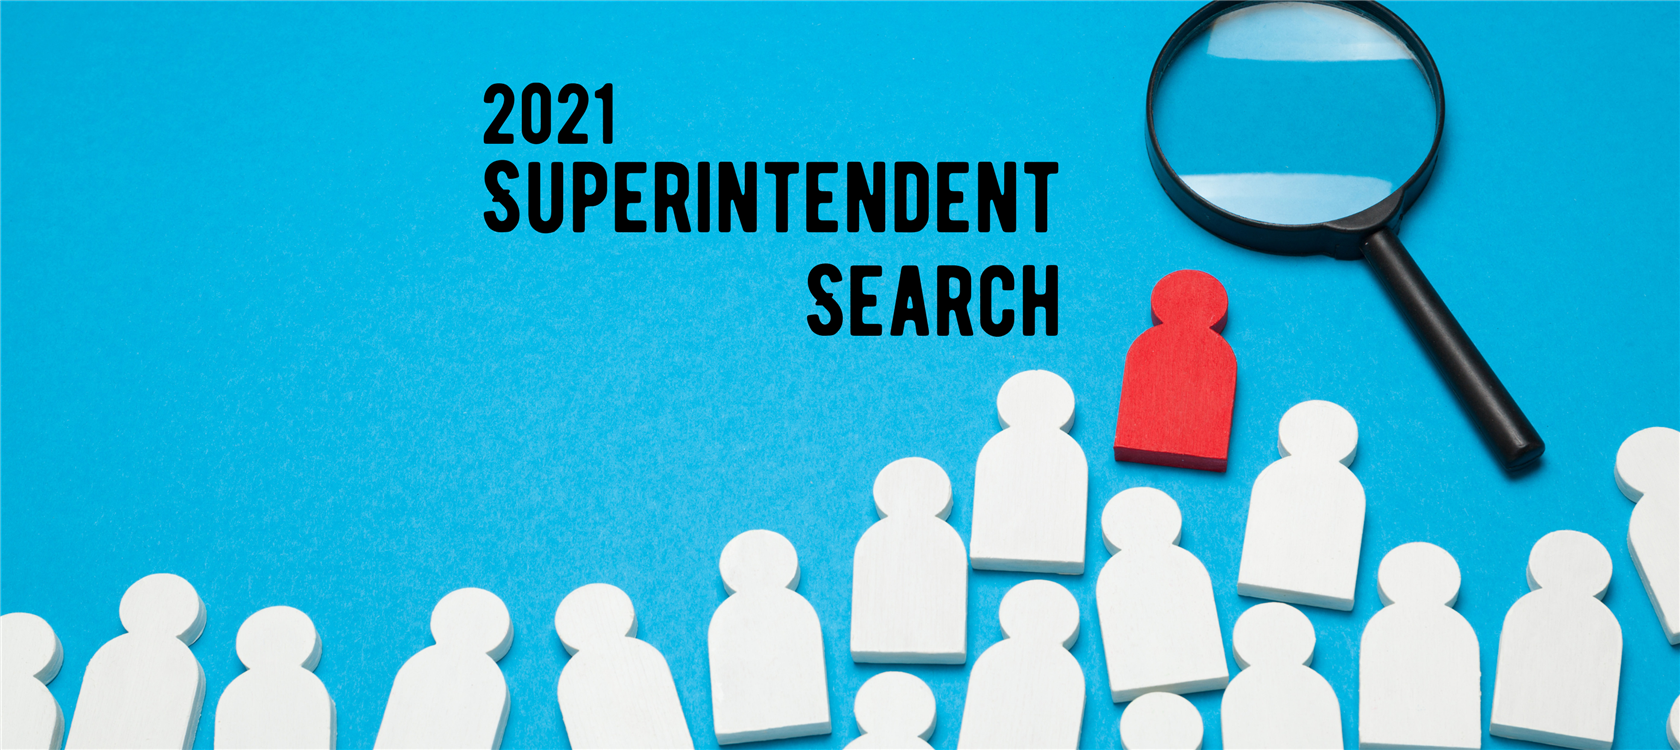 Superintendent Search:  Finalists Update on March 29, 2021